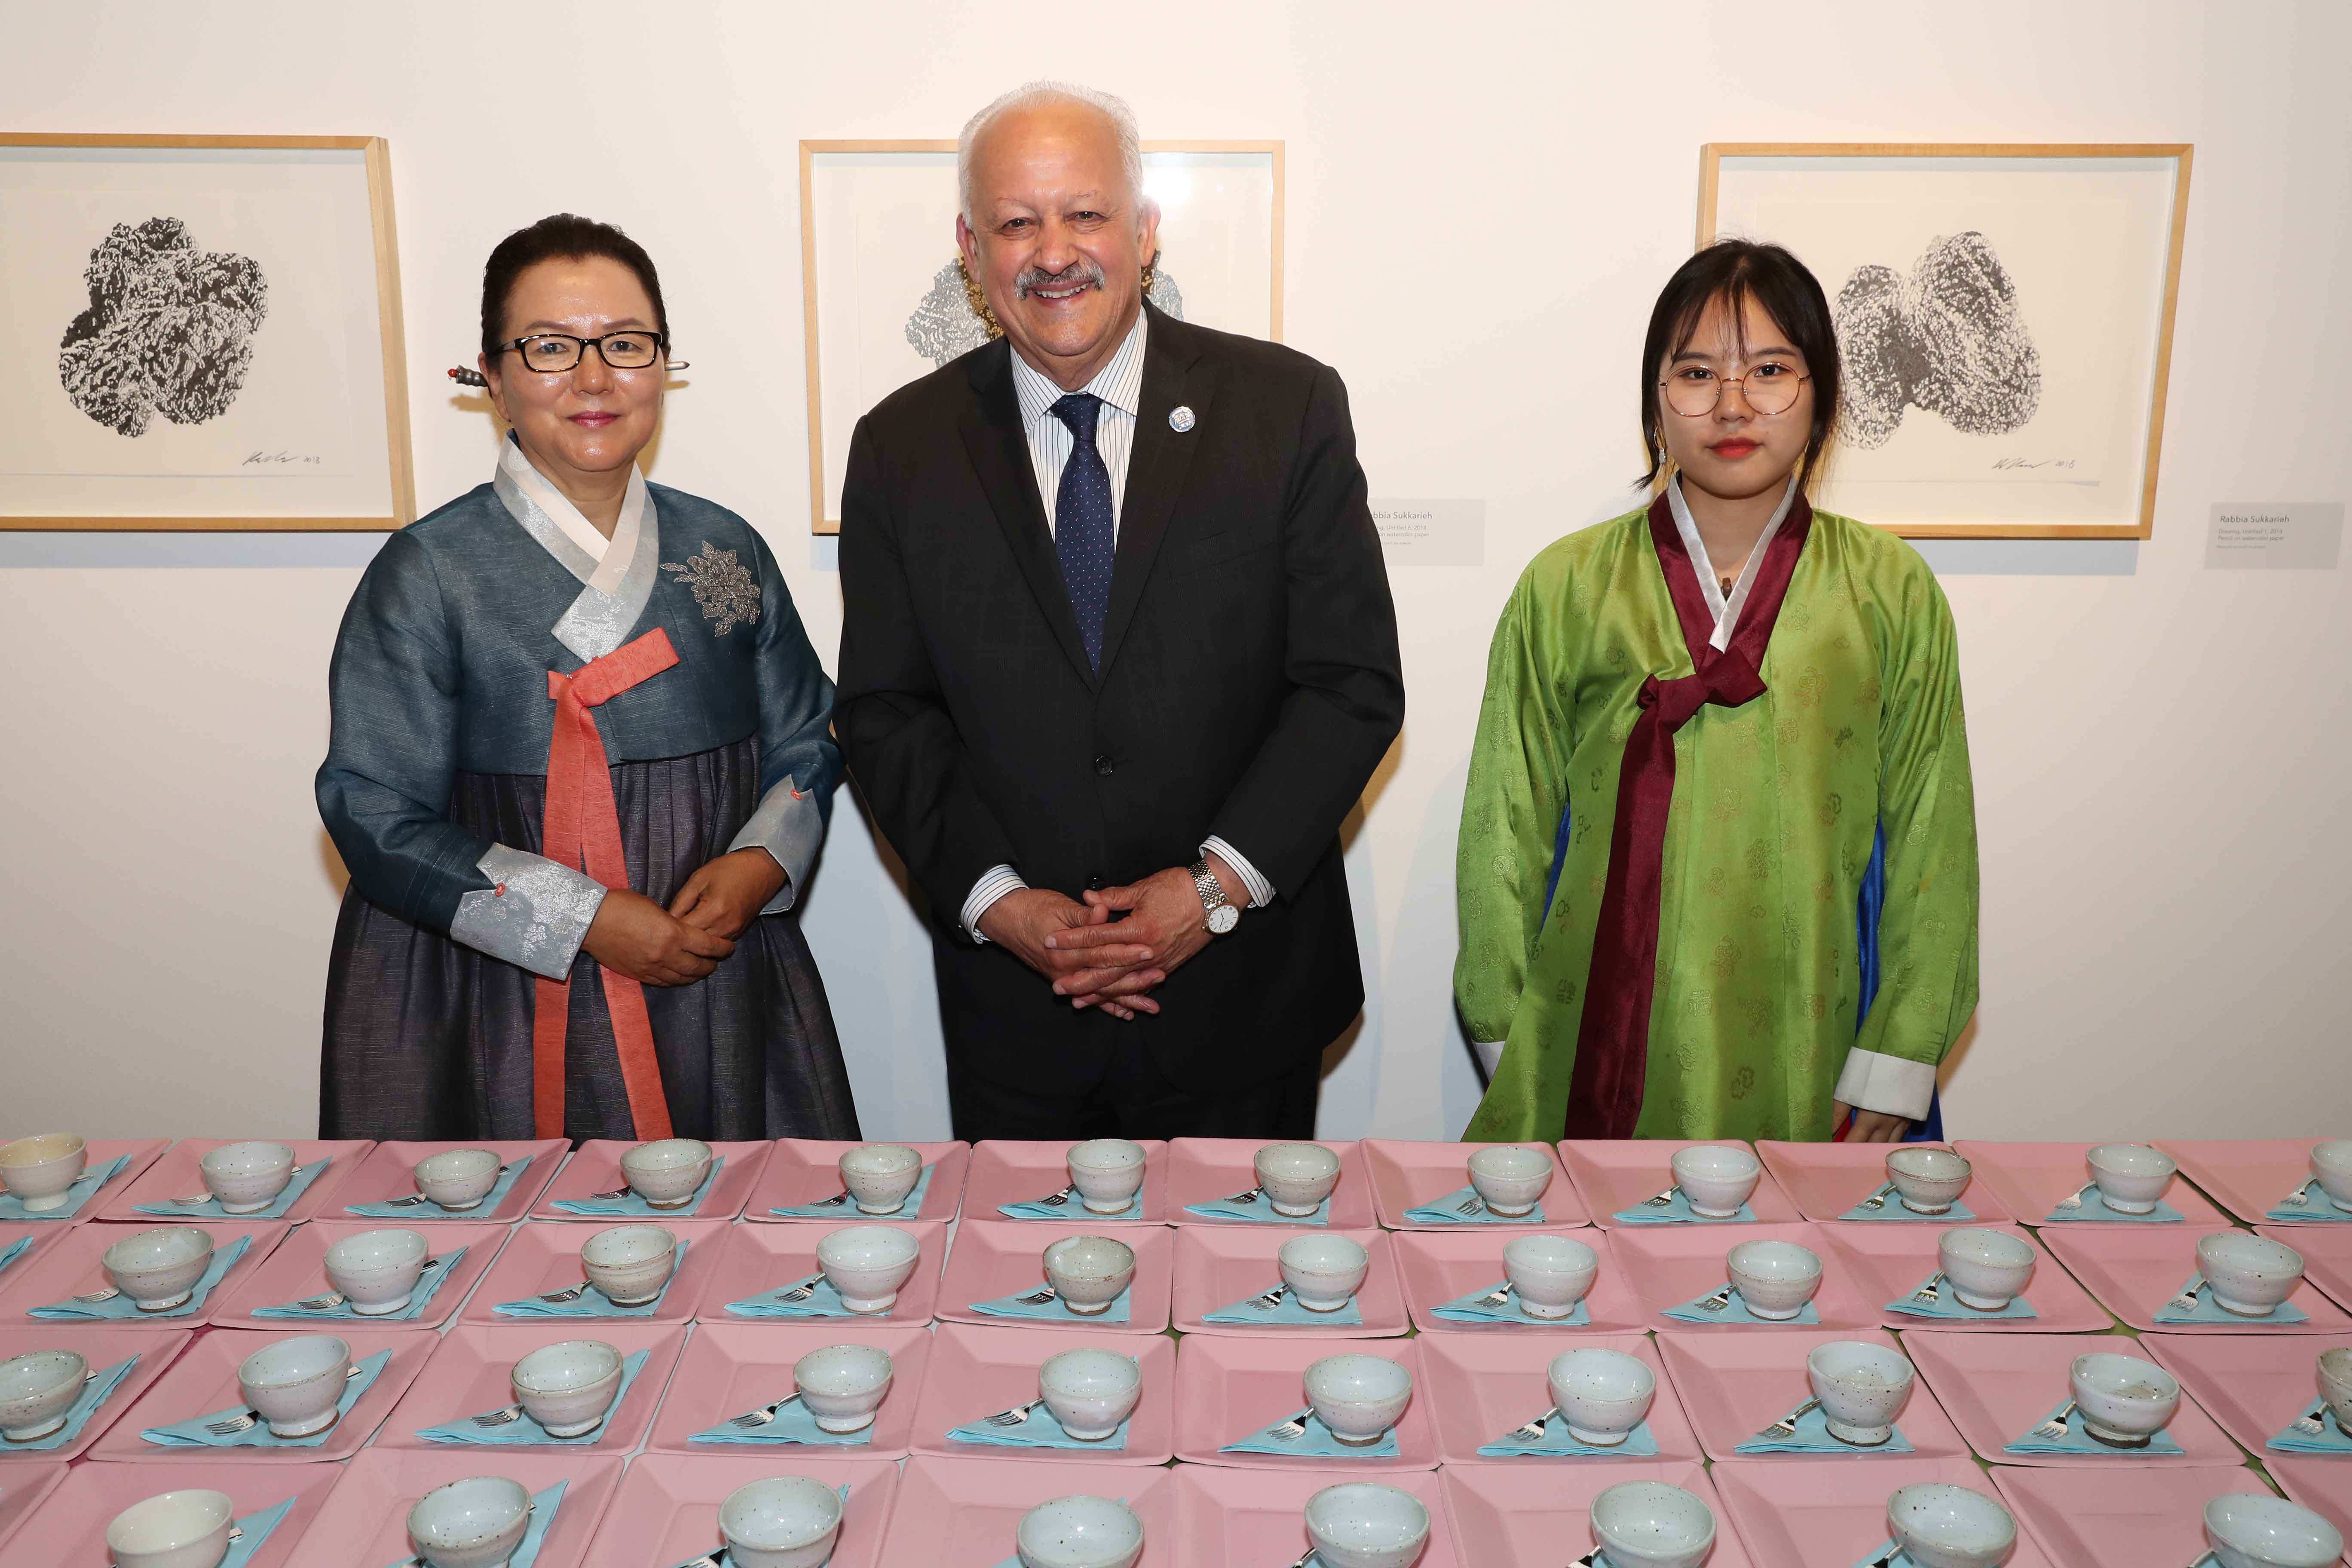 The Robert and Frances Fullerton Museum of Art (RAFFMA) at Cal State San Bernardino hosted a traditional Korean tea ceremony on March 7